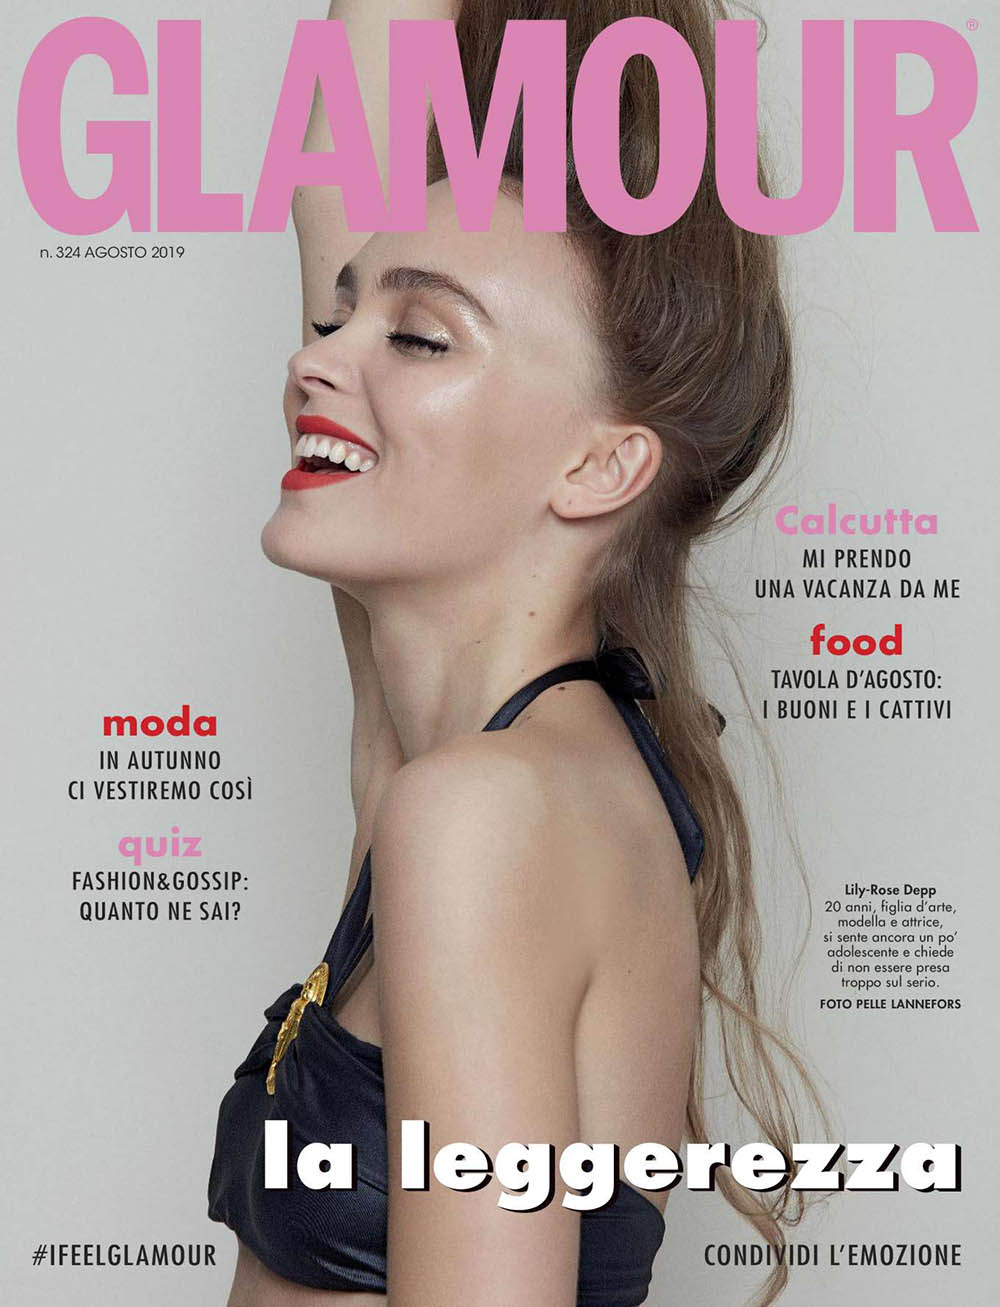 Lily-Rose Depp covers Glamour Italia August 2019 by Pelle Lannefors